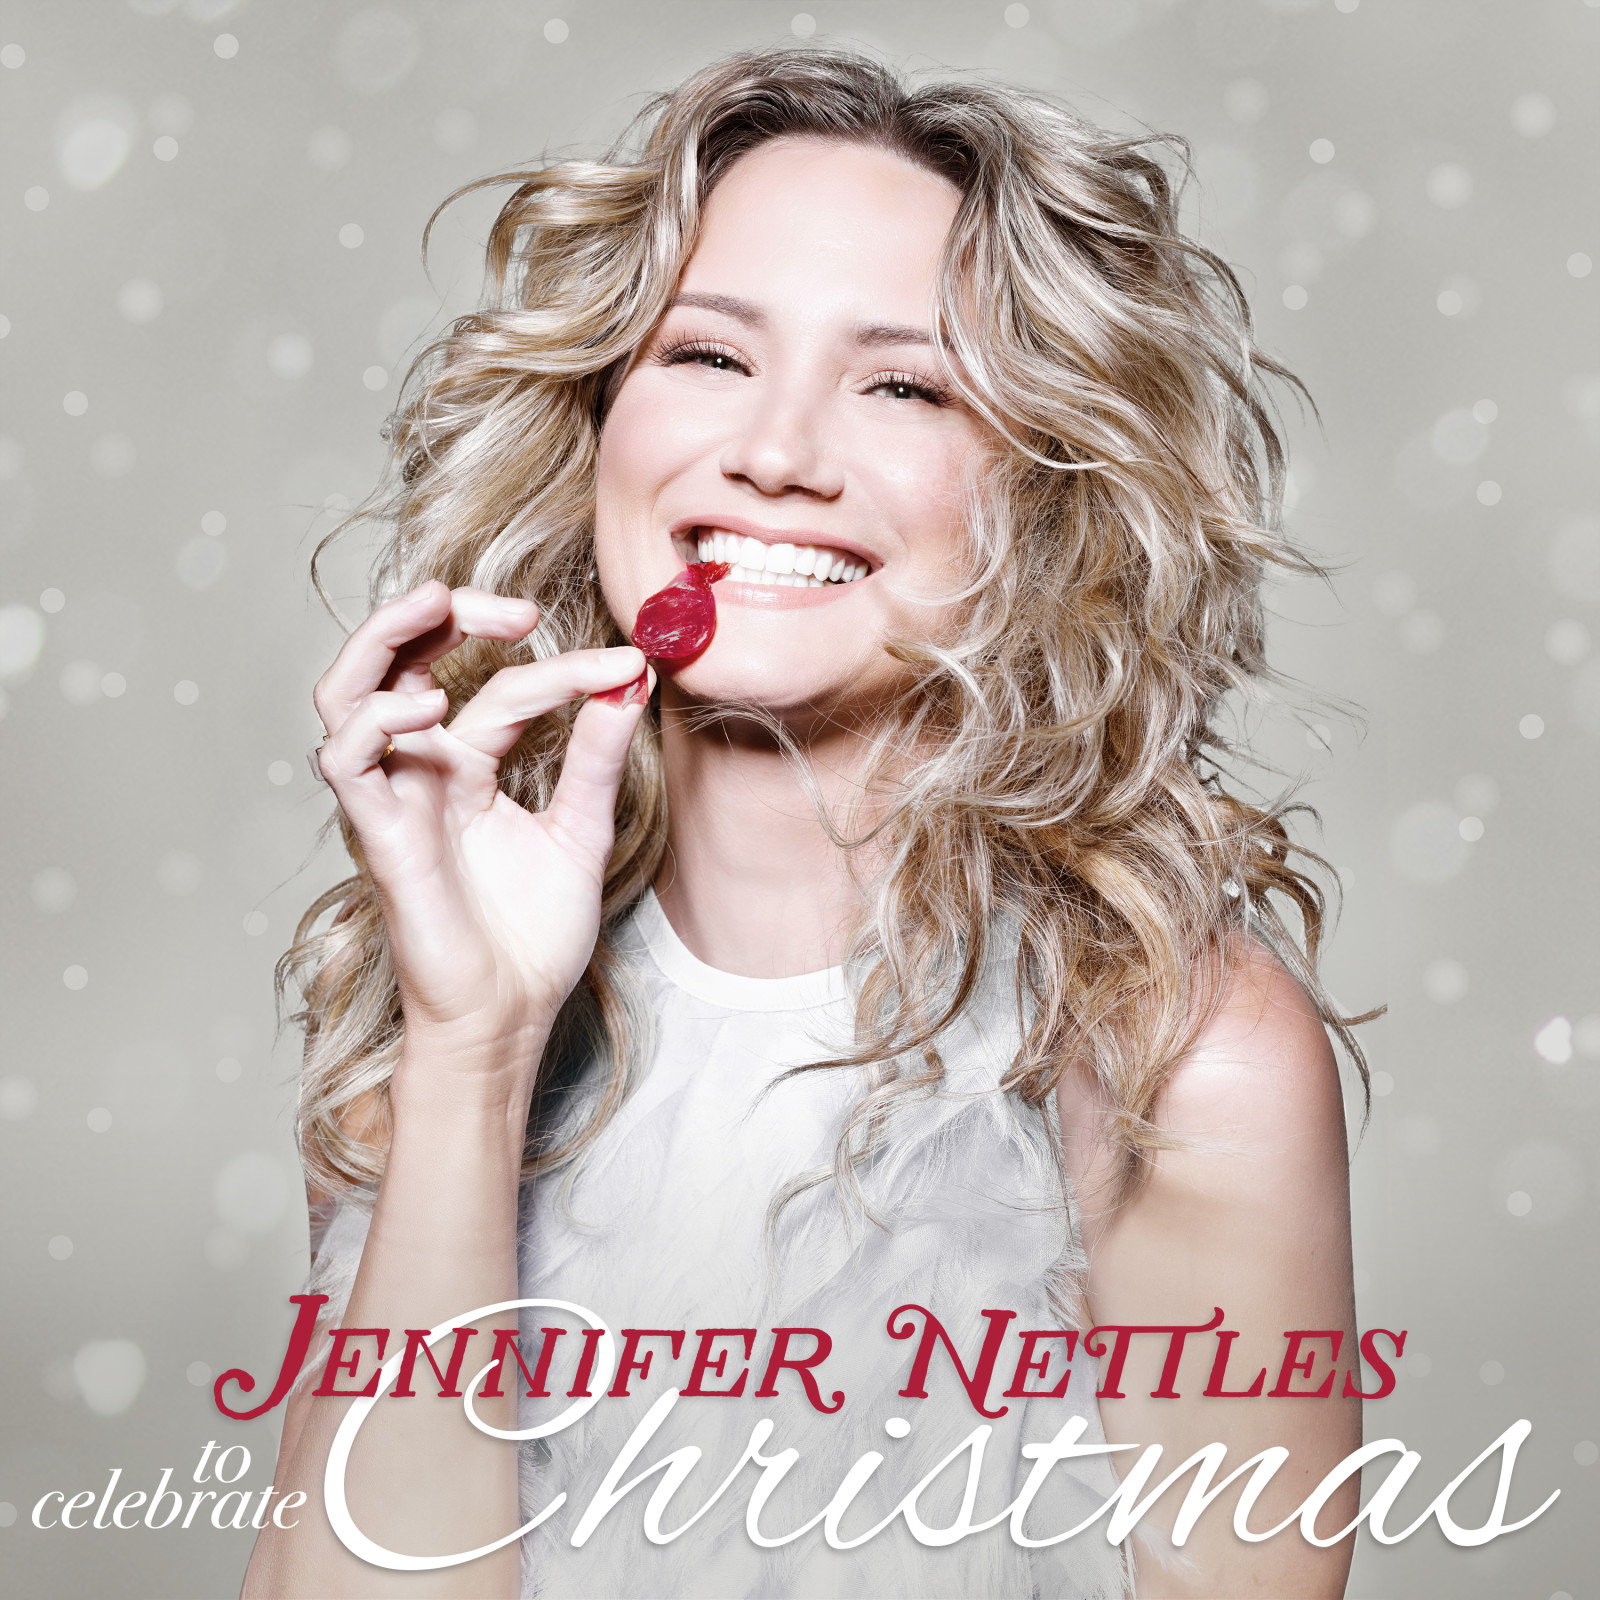 Jennifer Nettles Announces To Celebrate Christmas | CMT